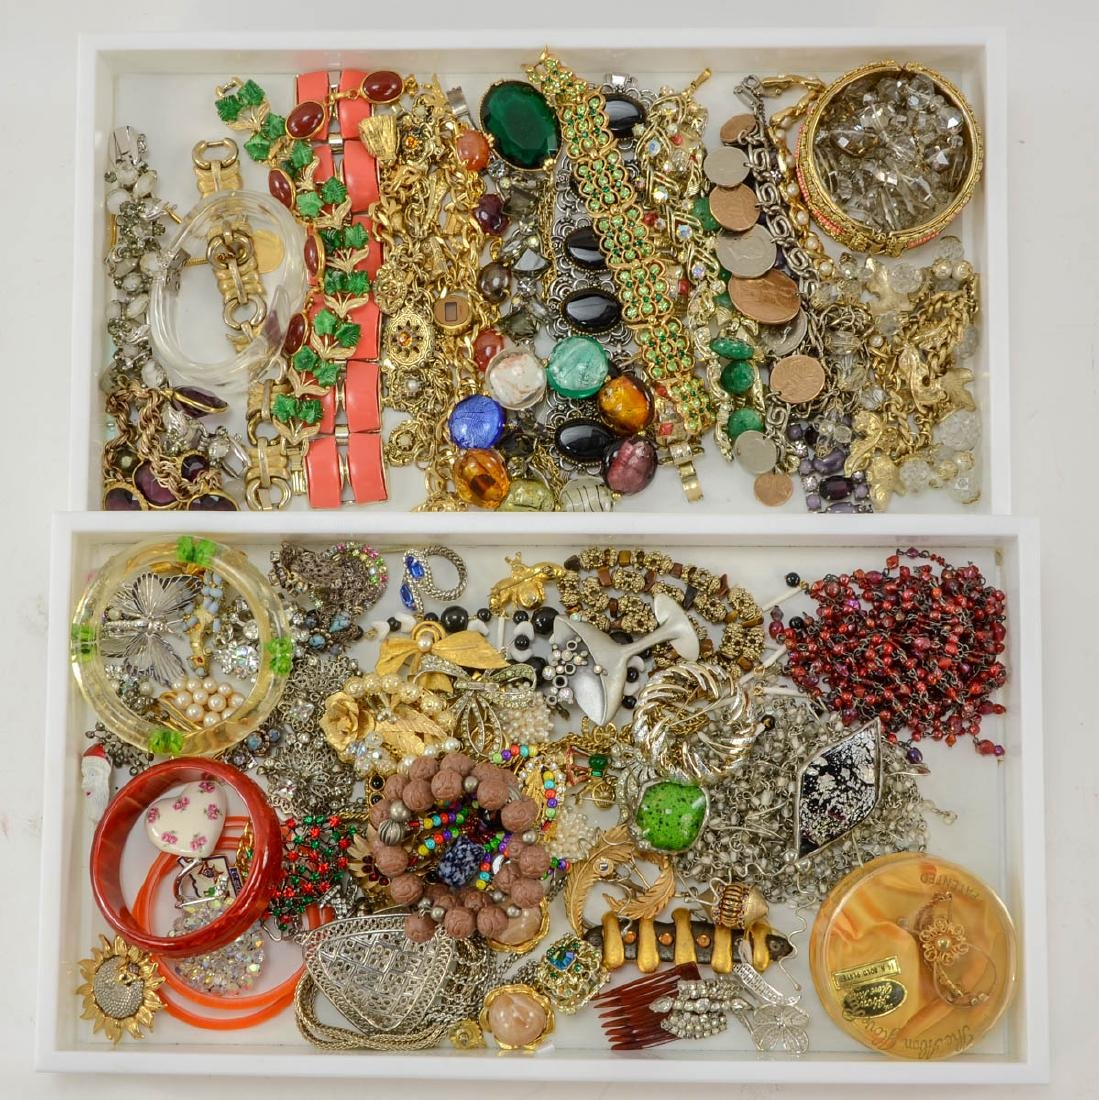 2 trays of fashion jewelry